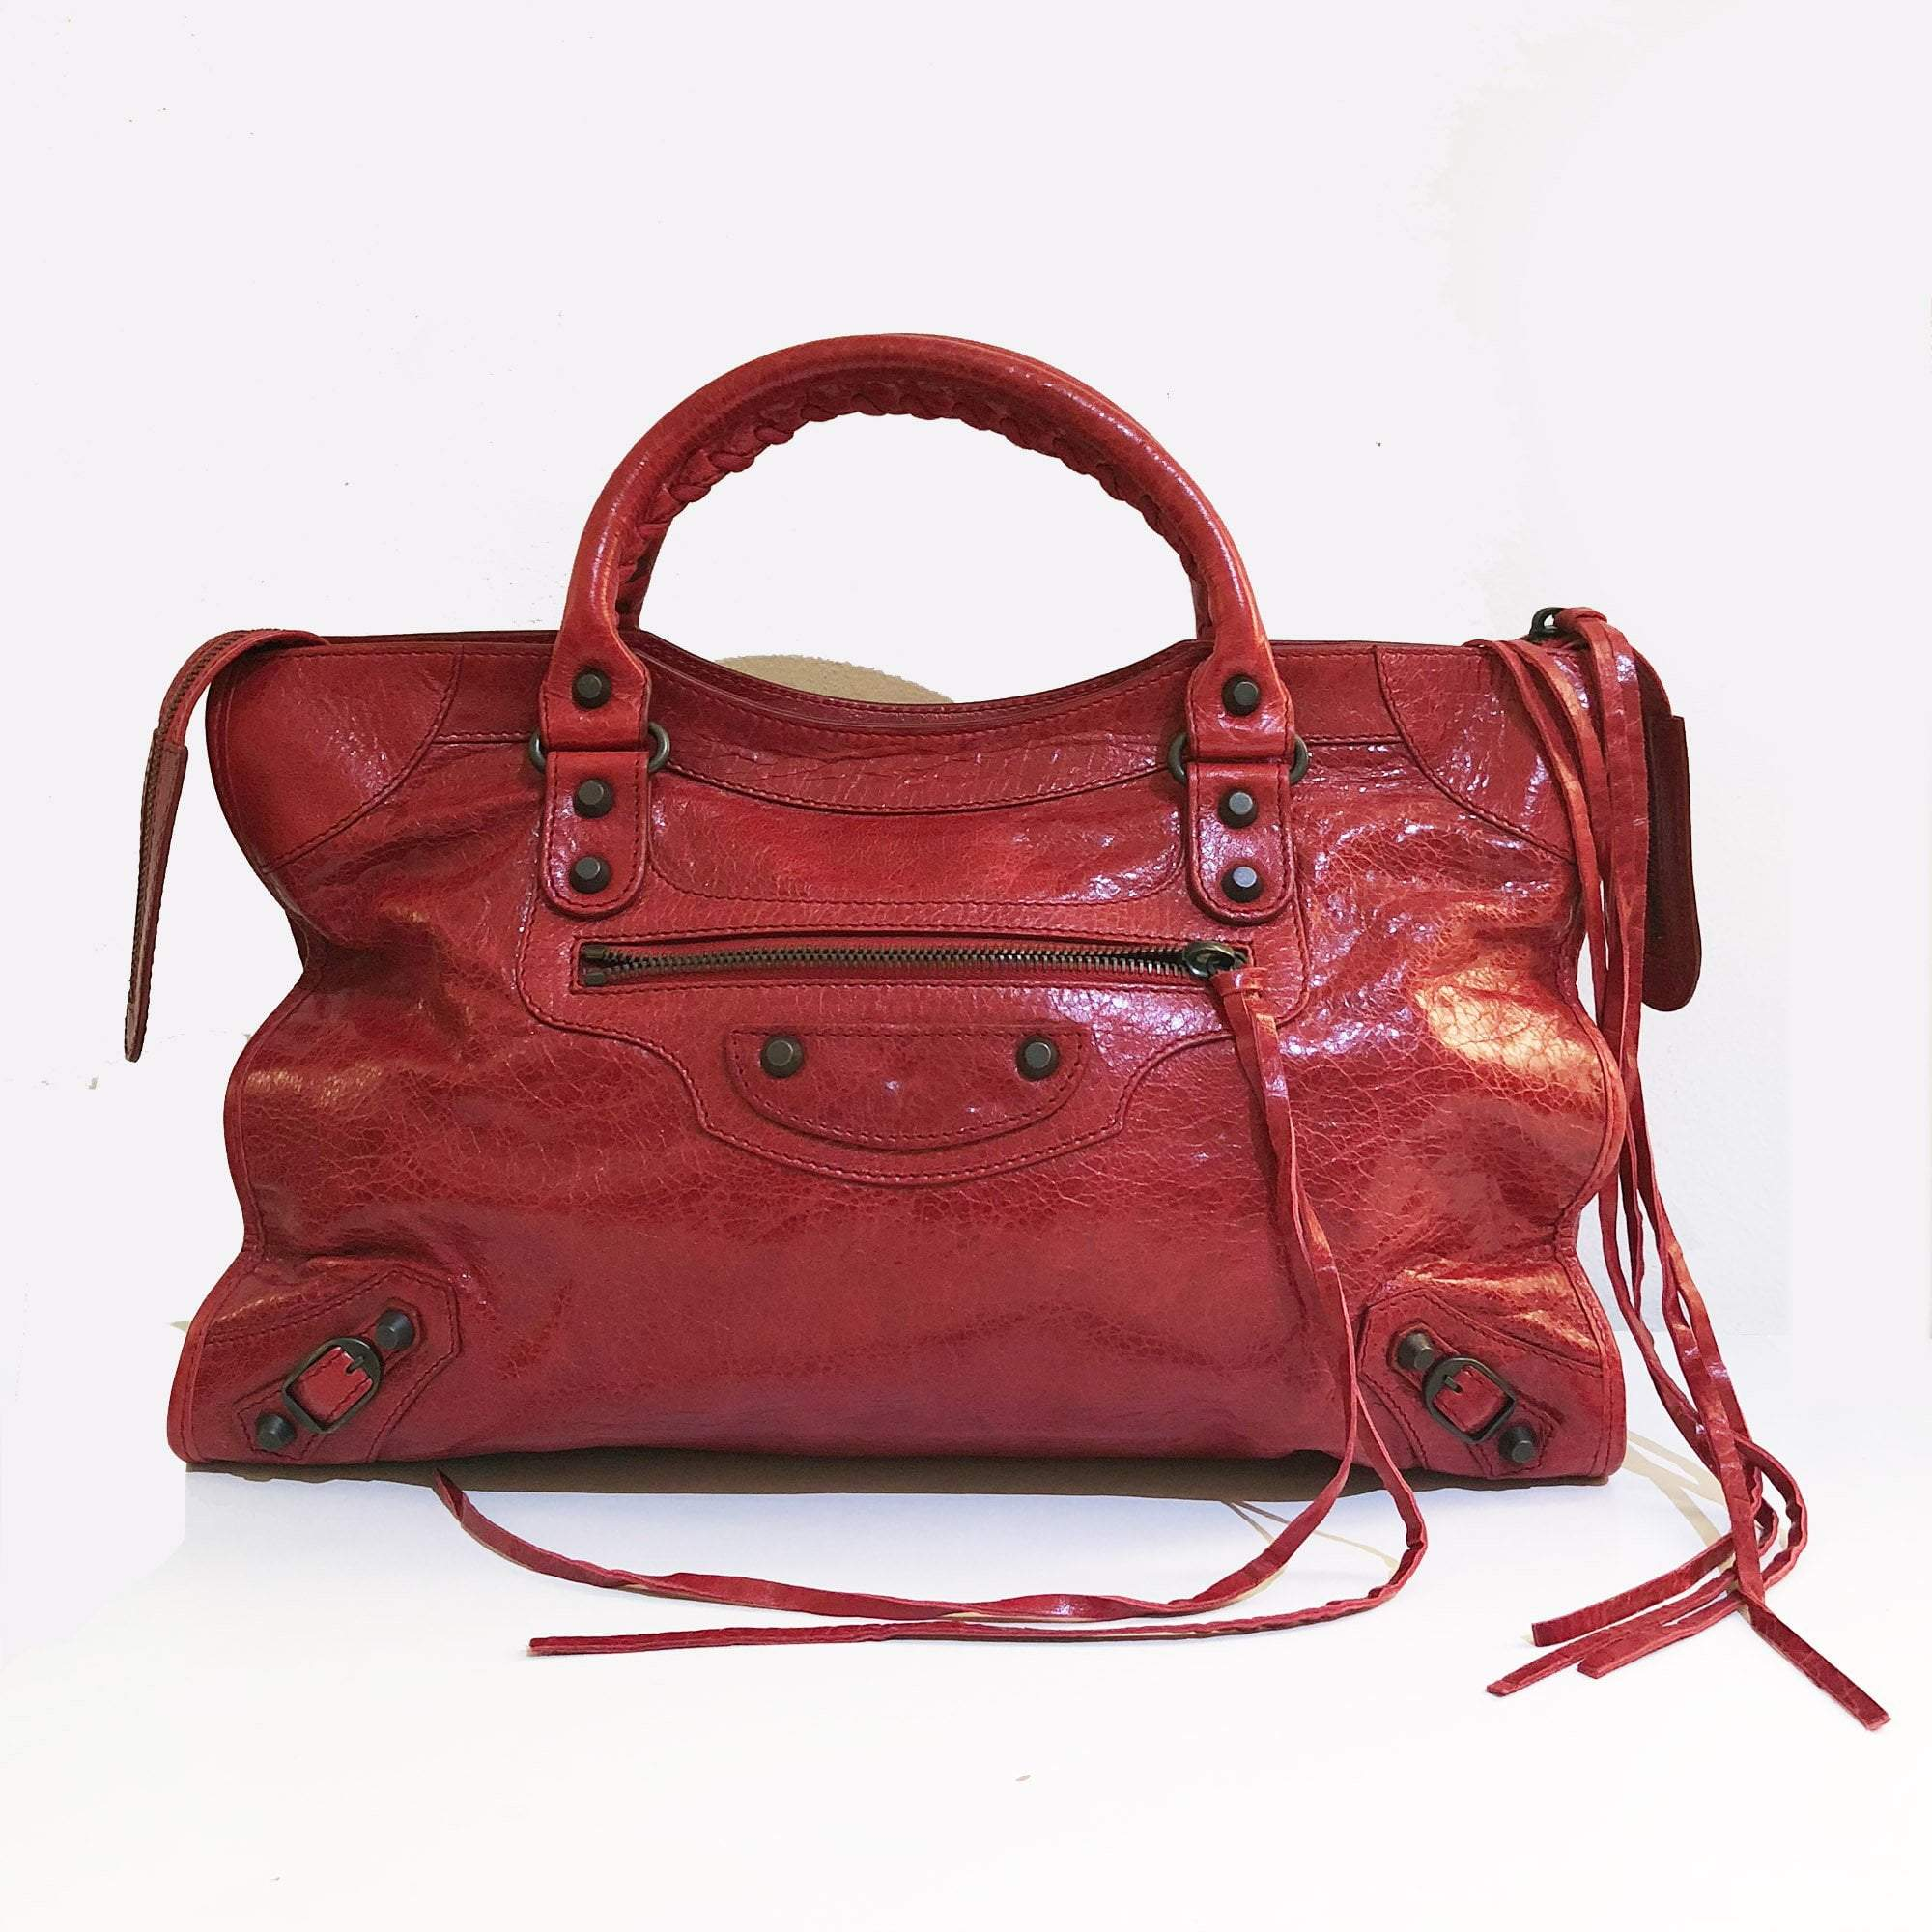 Balenciaga Classic Medium City Red Bag